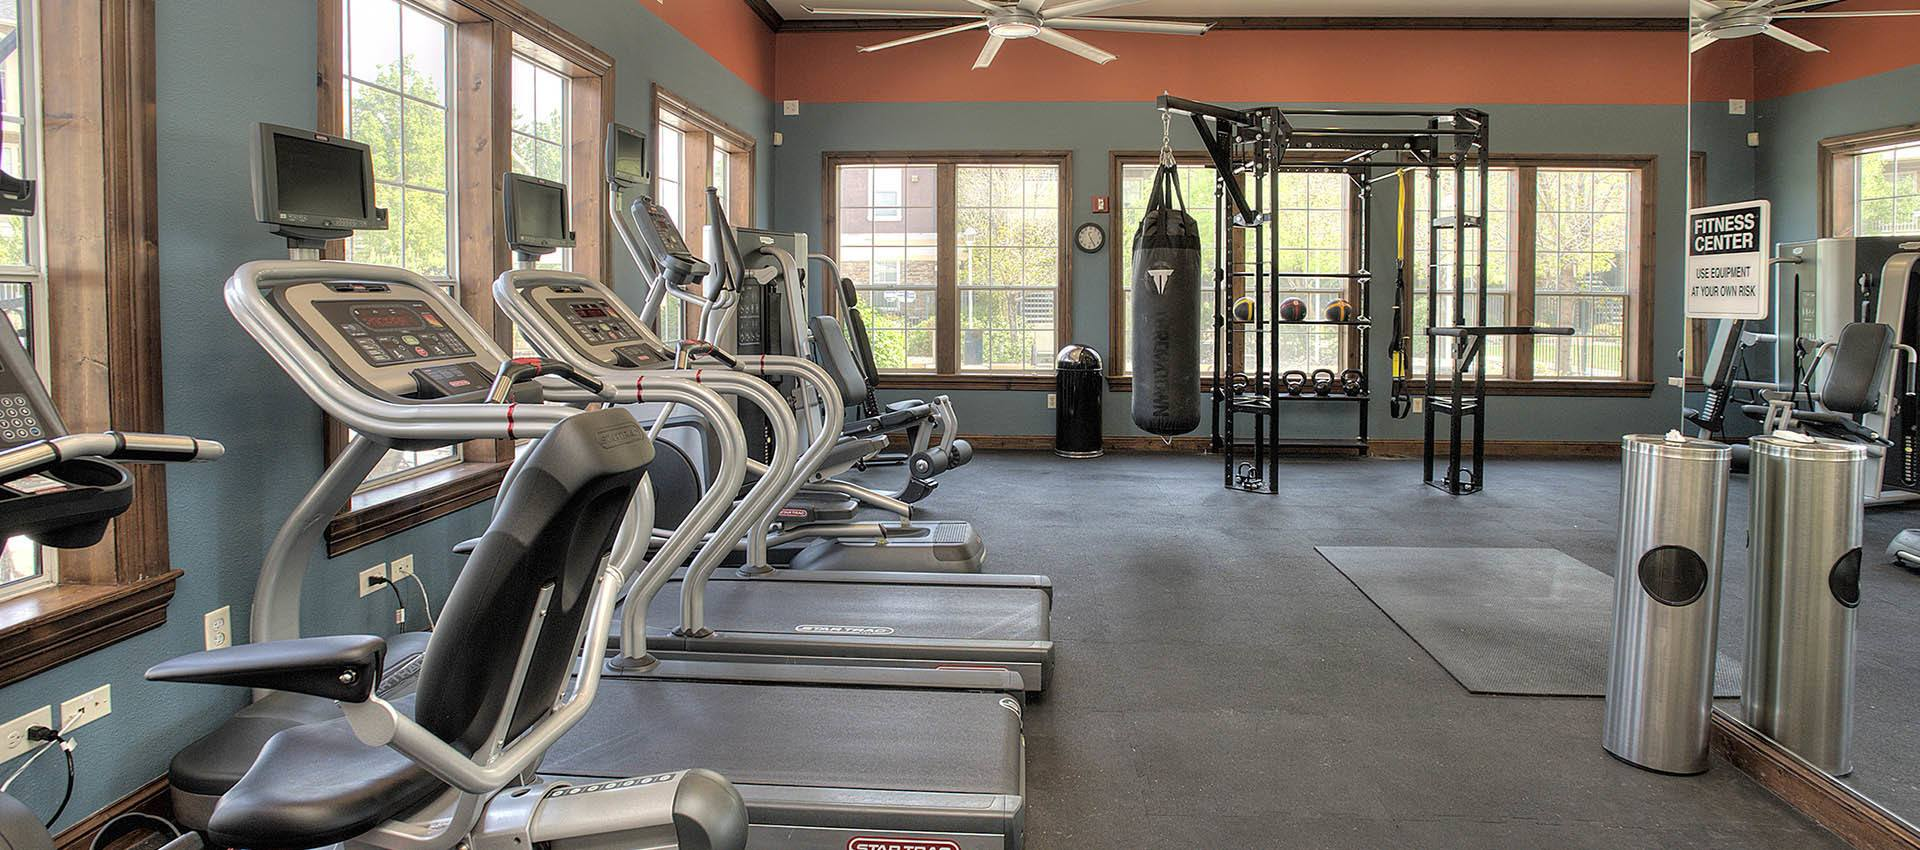 Exceptional fitness center at The Vintage at South Meadows Condominium Rentals in Reno